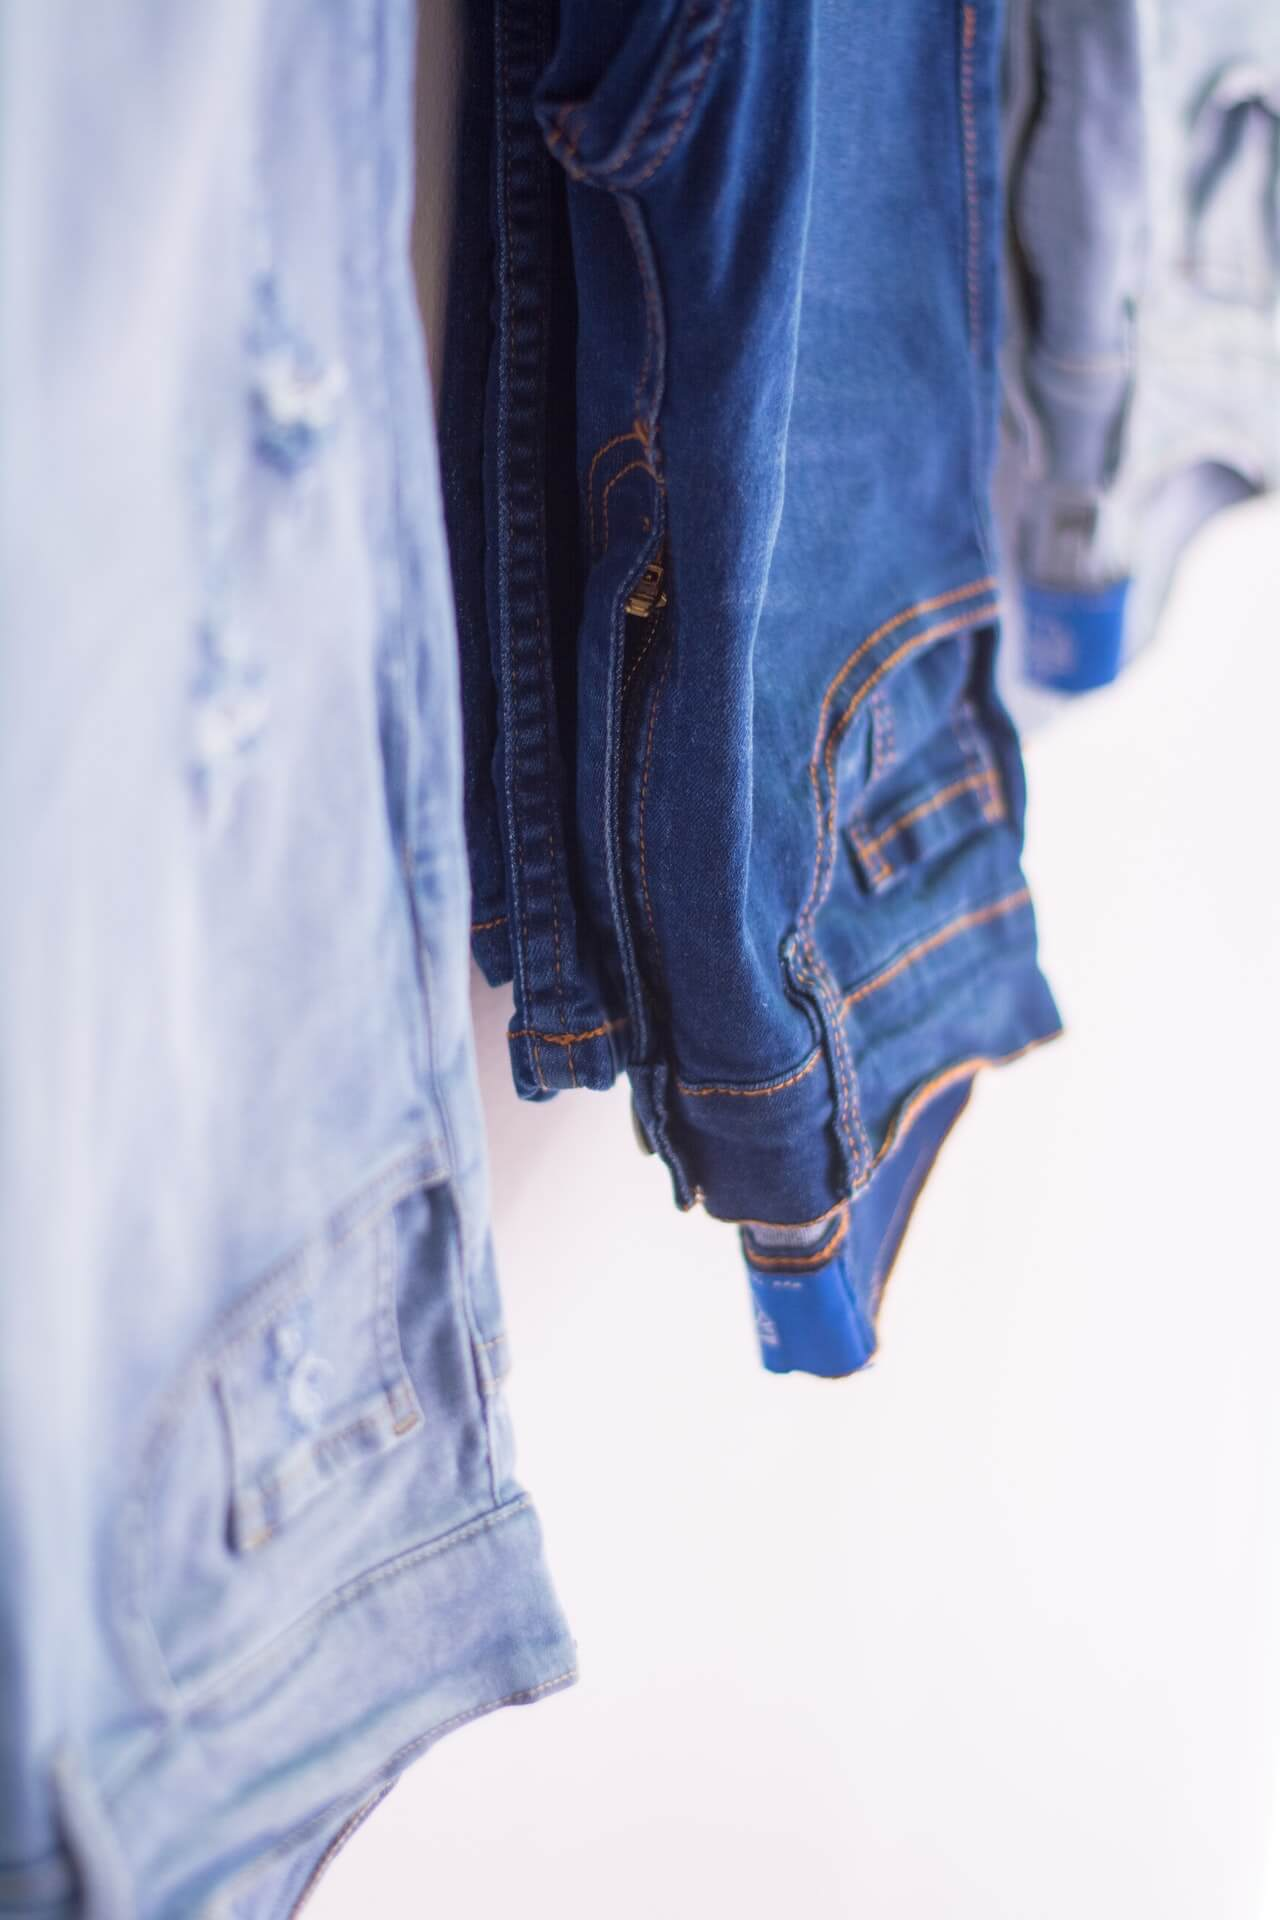 hanging jeans